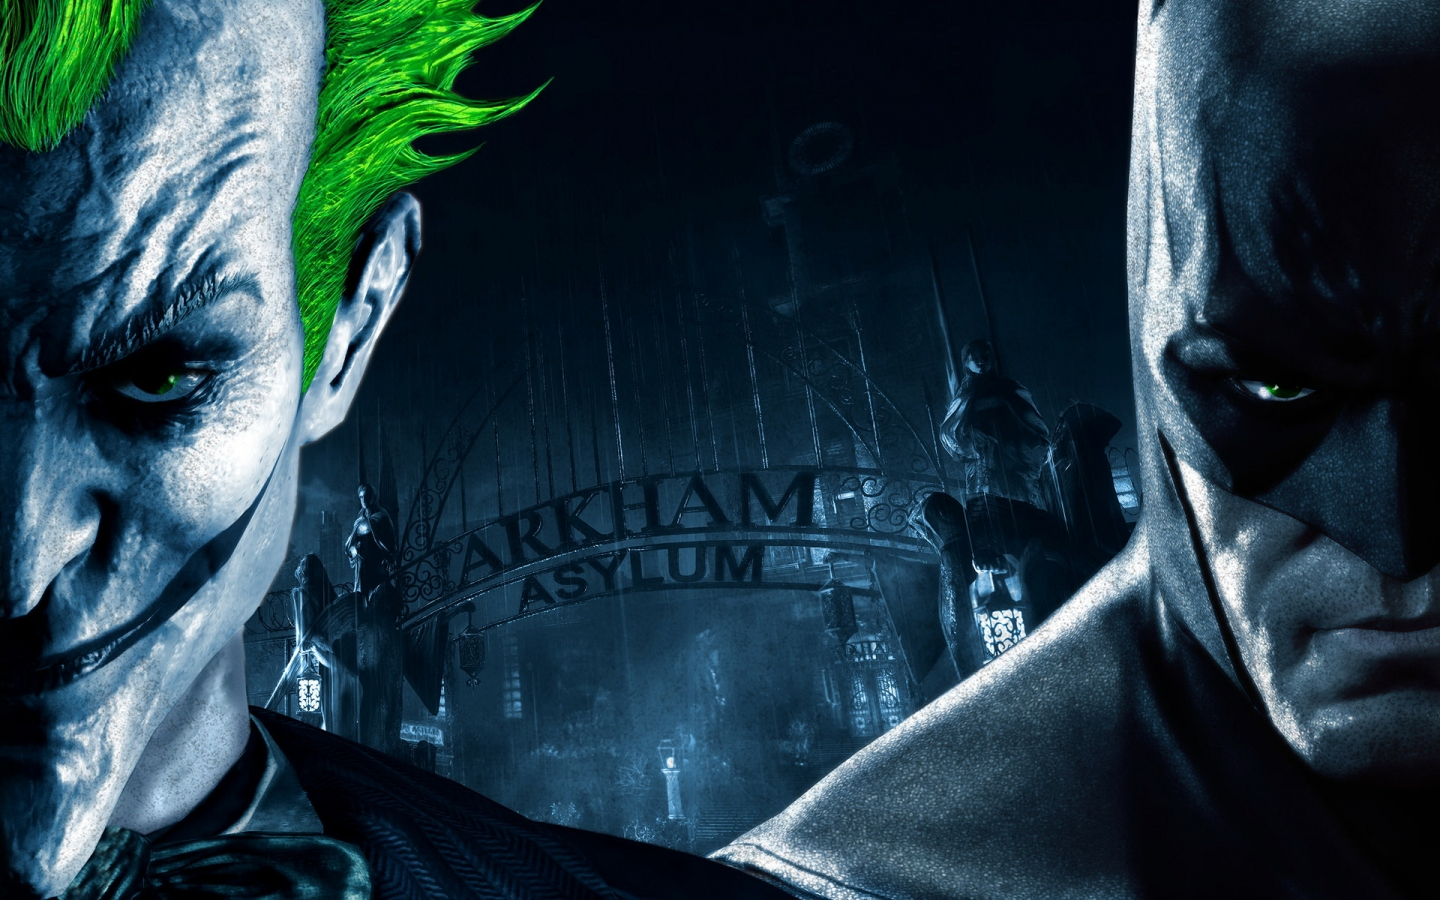 Joker Vs Batman Wallpaper   1440x900 iWallHD   Wallpaper HD 1440x900